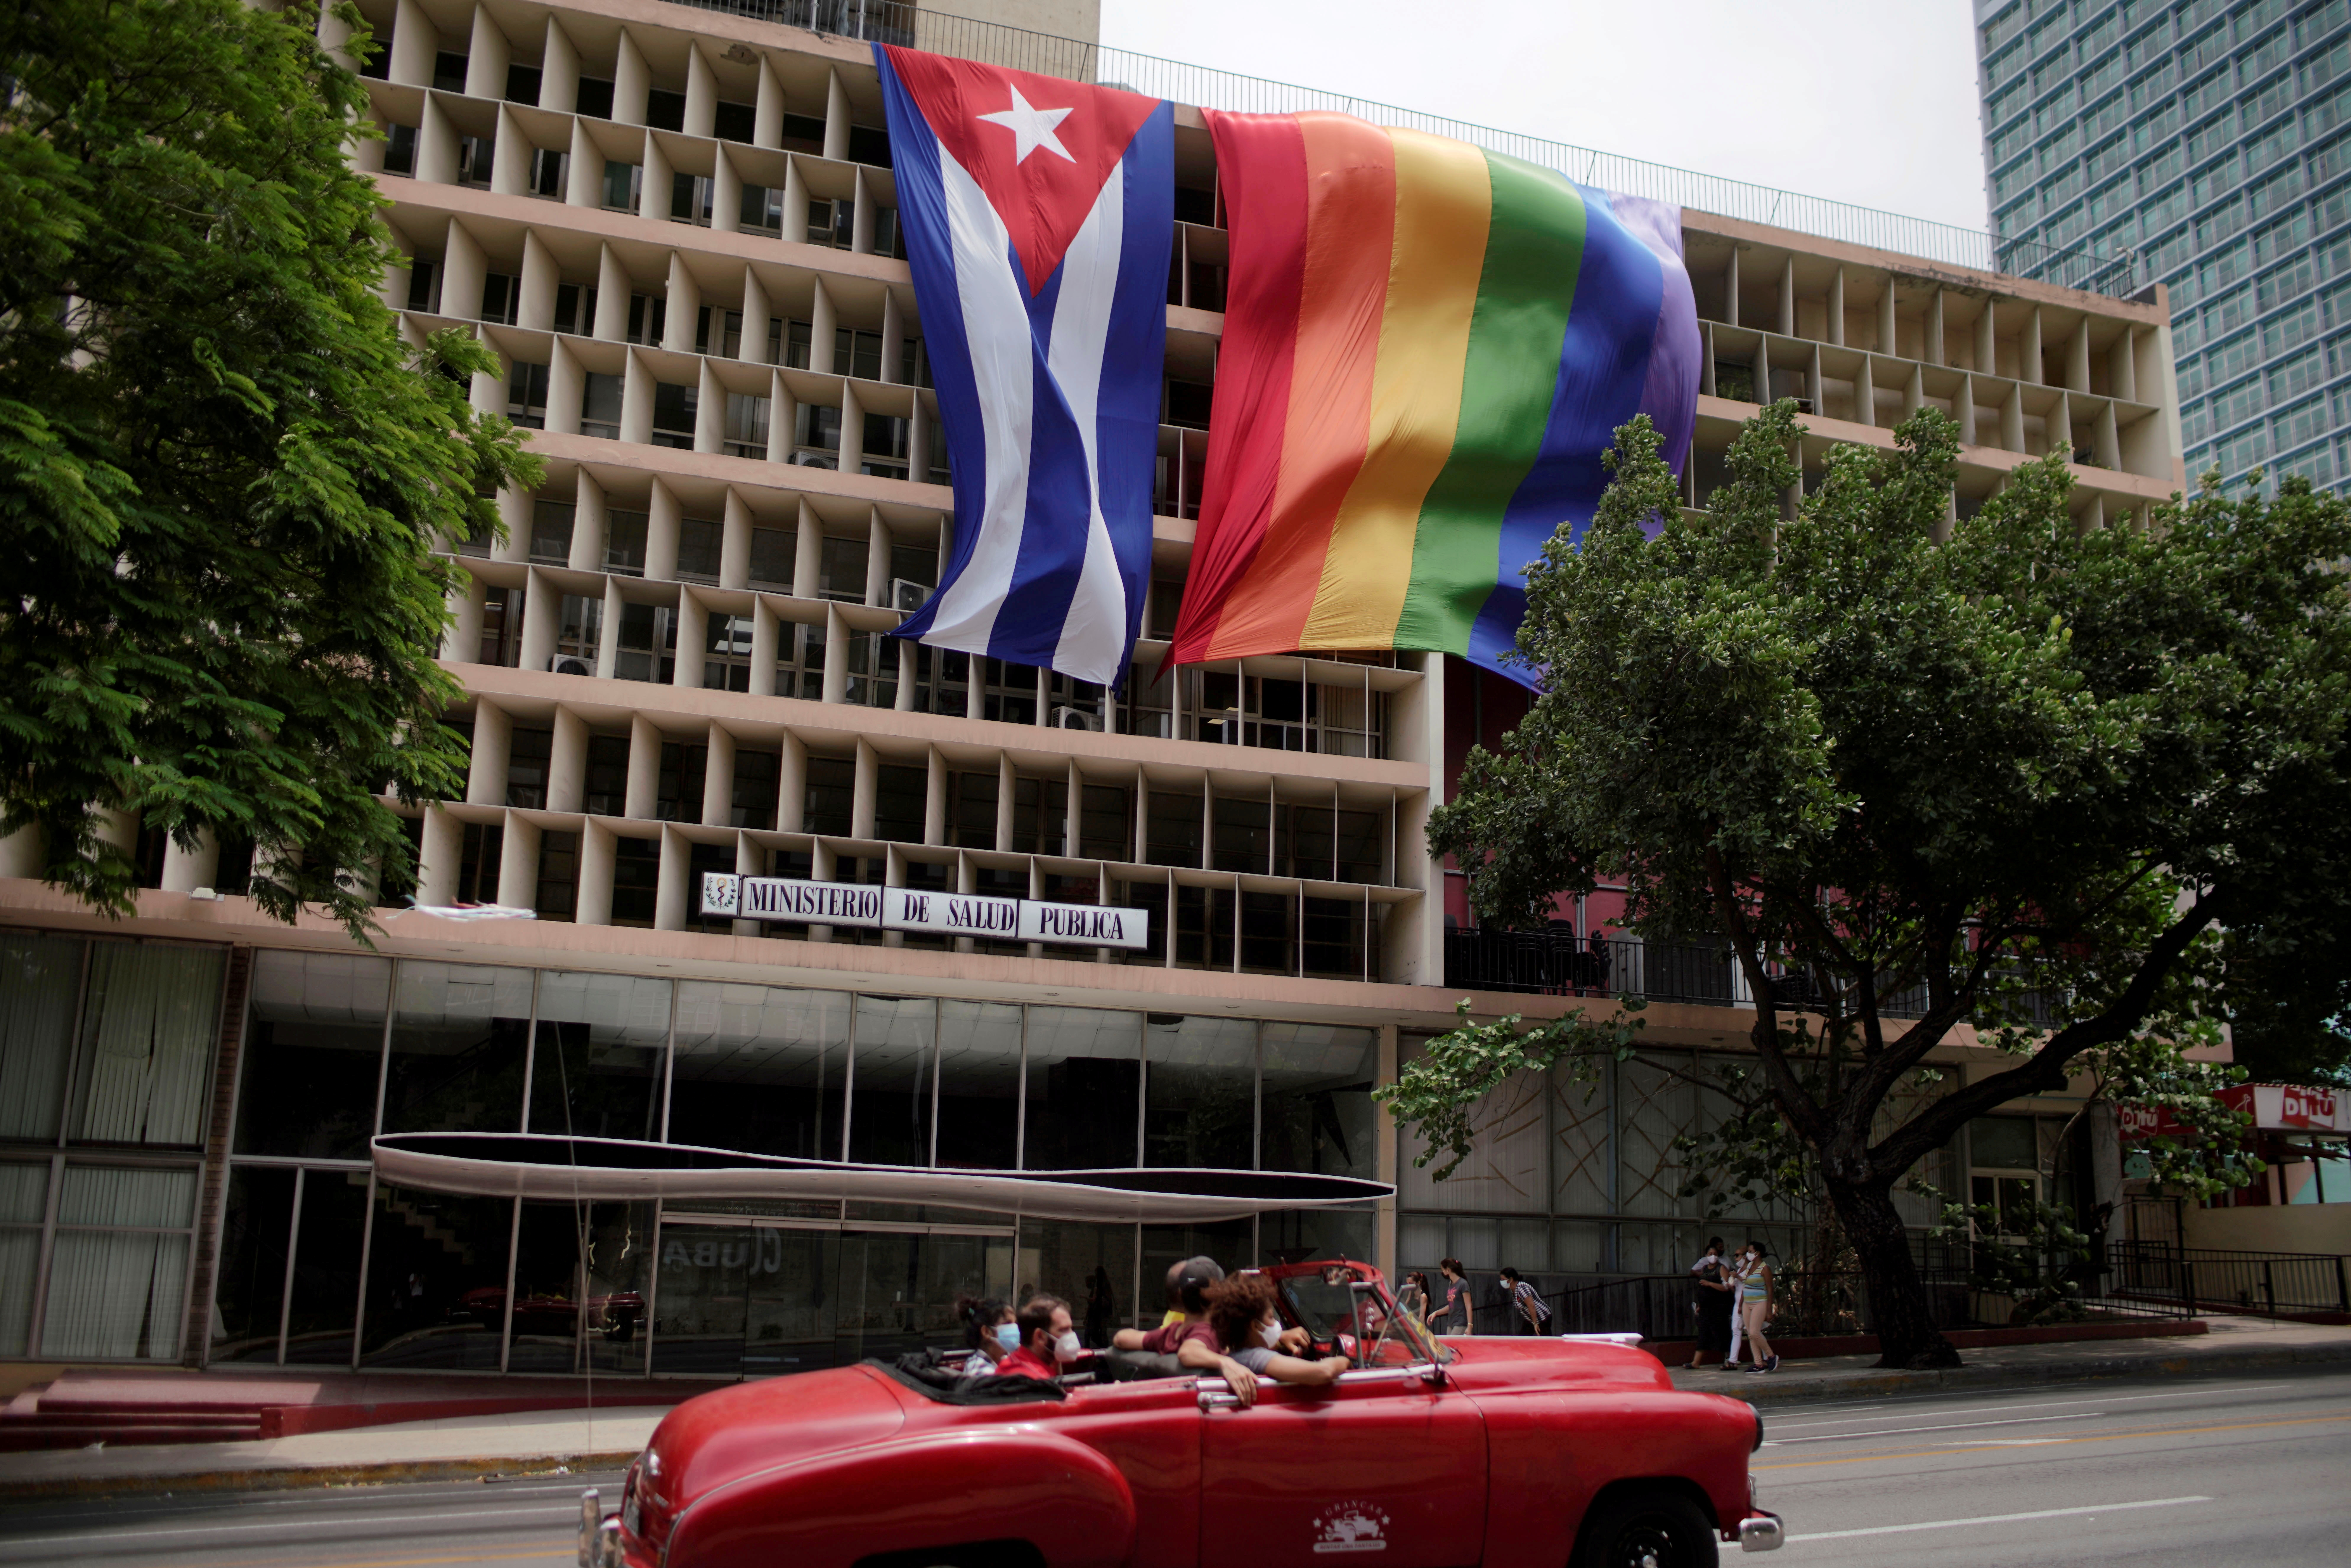 People pass in a vintage car in front of a rainbow flag hanging beside a Cuban flag at the Health Ministry building in Havana, Cuba, May 17, 2021. REUTERS/Alexandre Meneghini